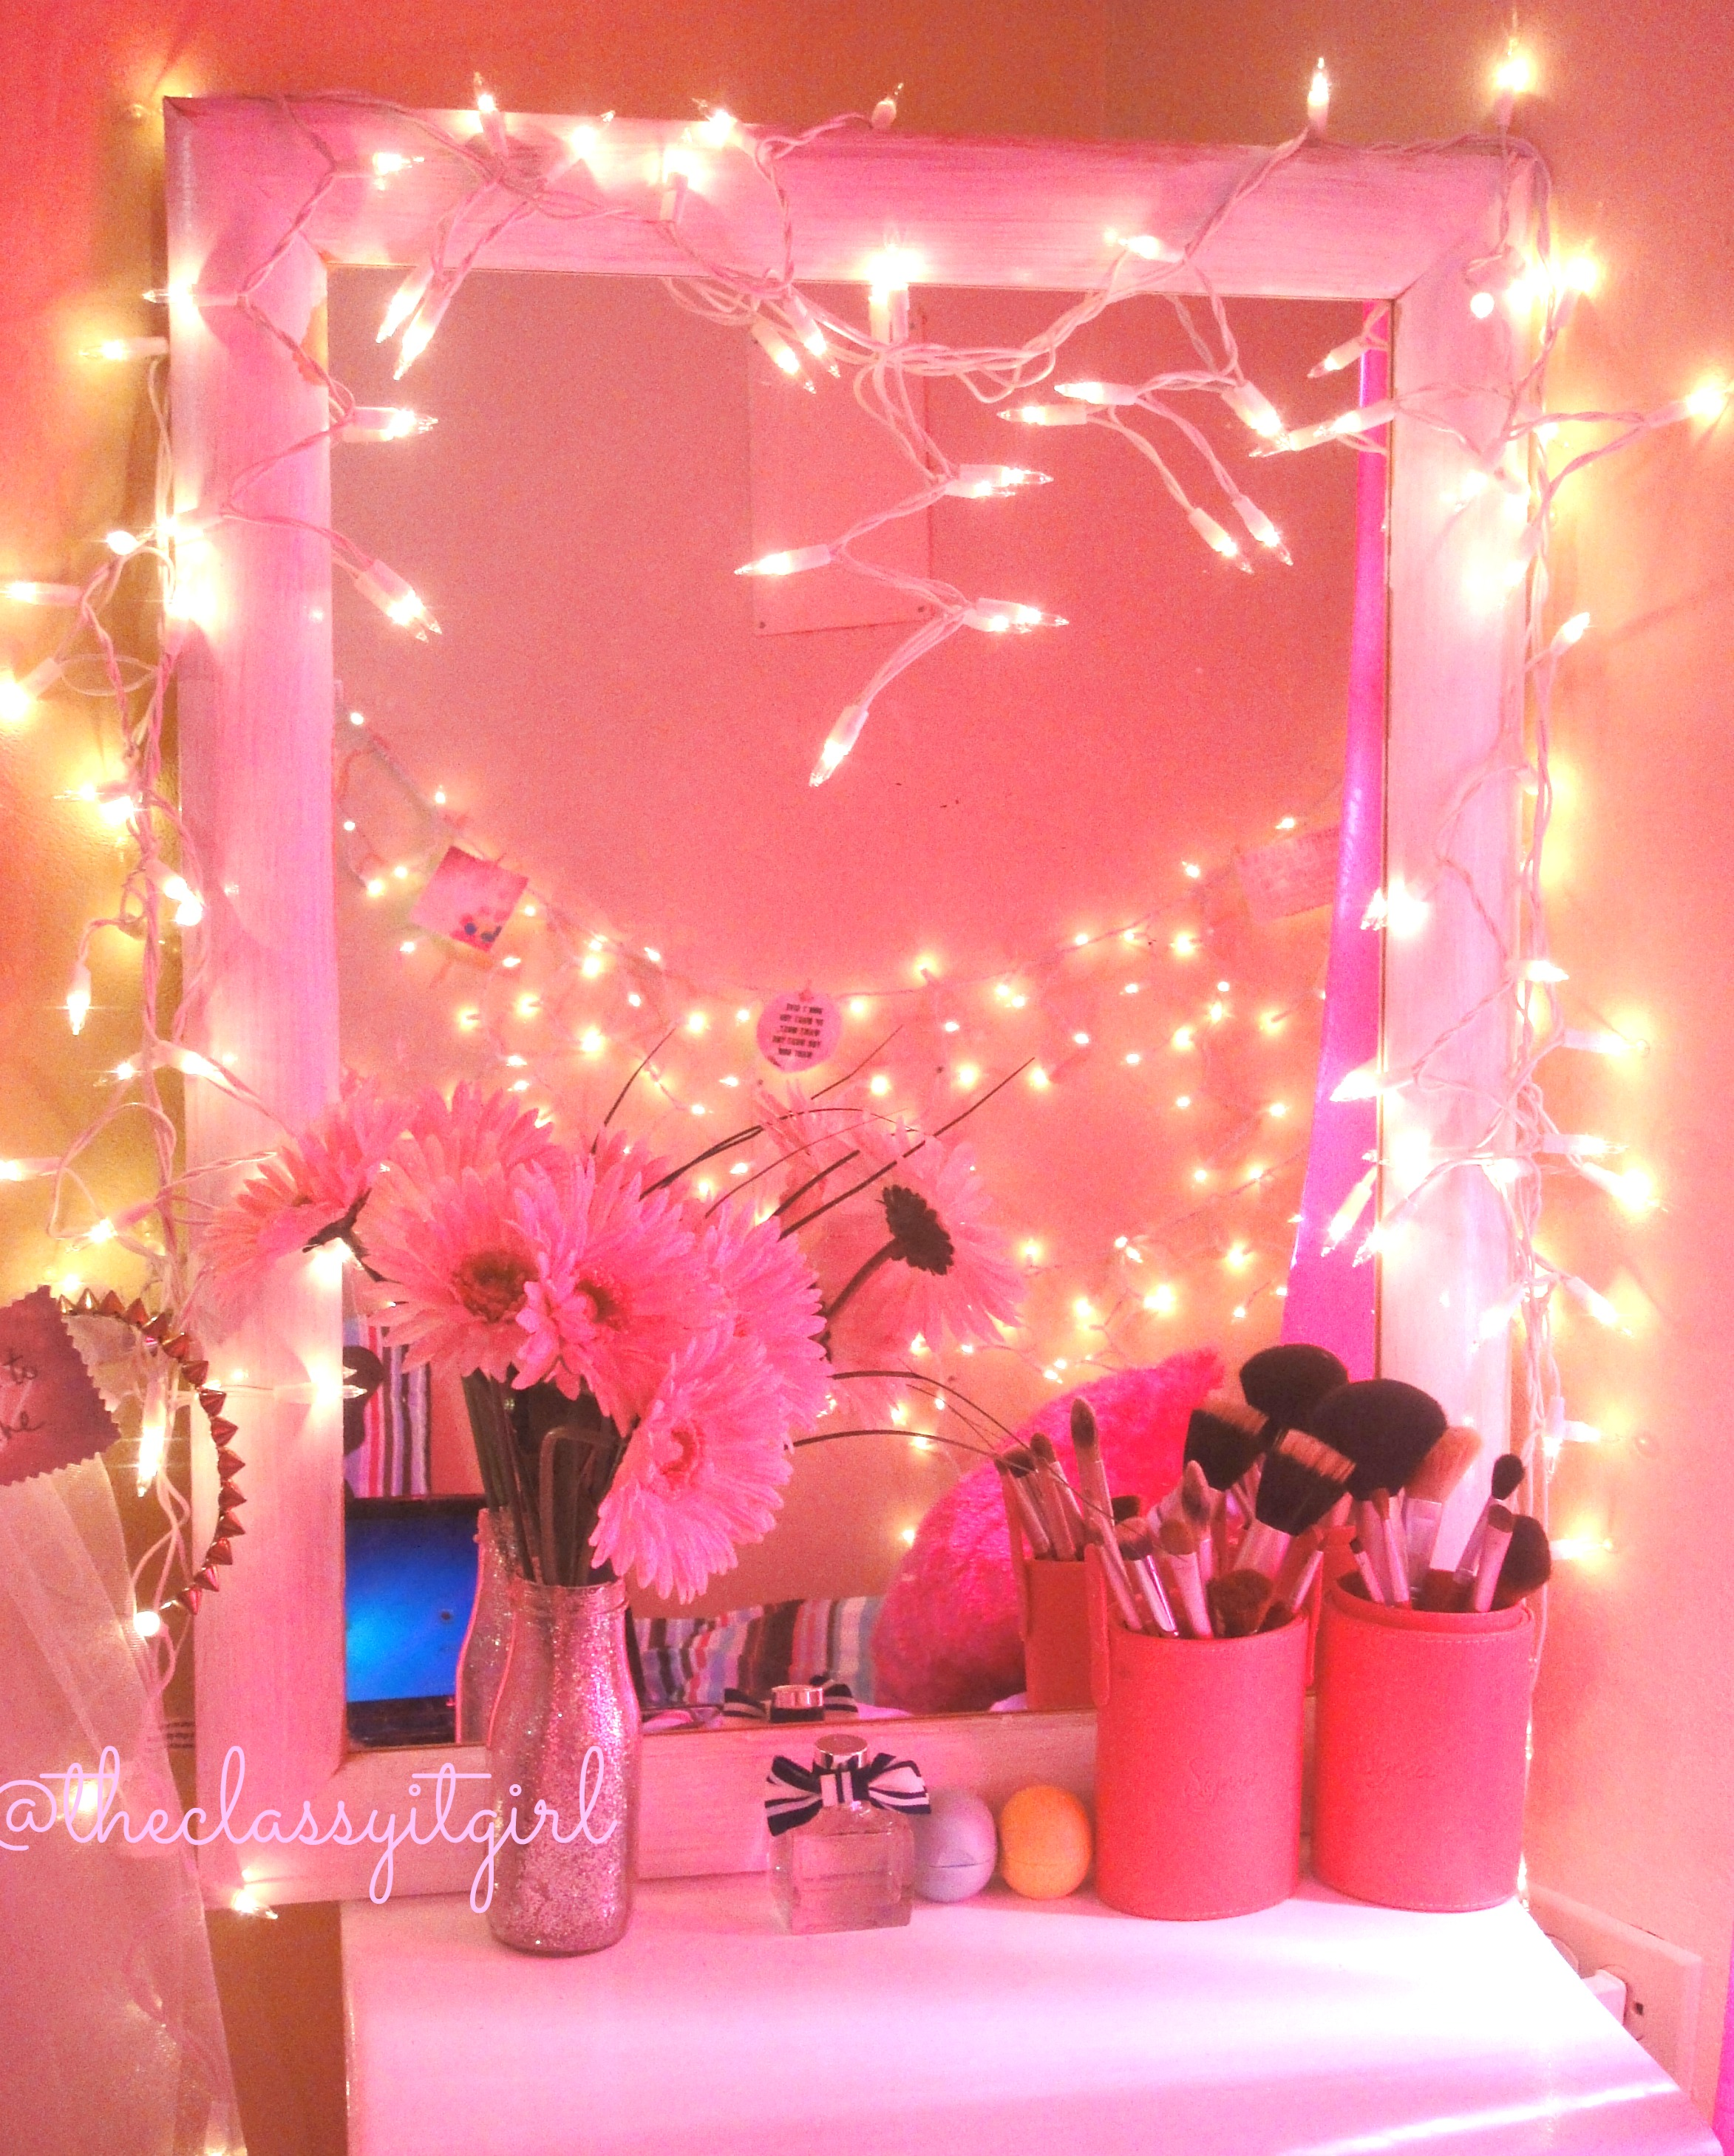 Dormspiration diy room d cor the classy it girl for Cute diy bedroom ideas